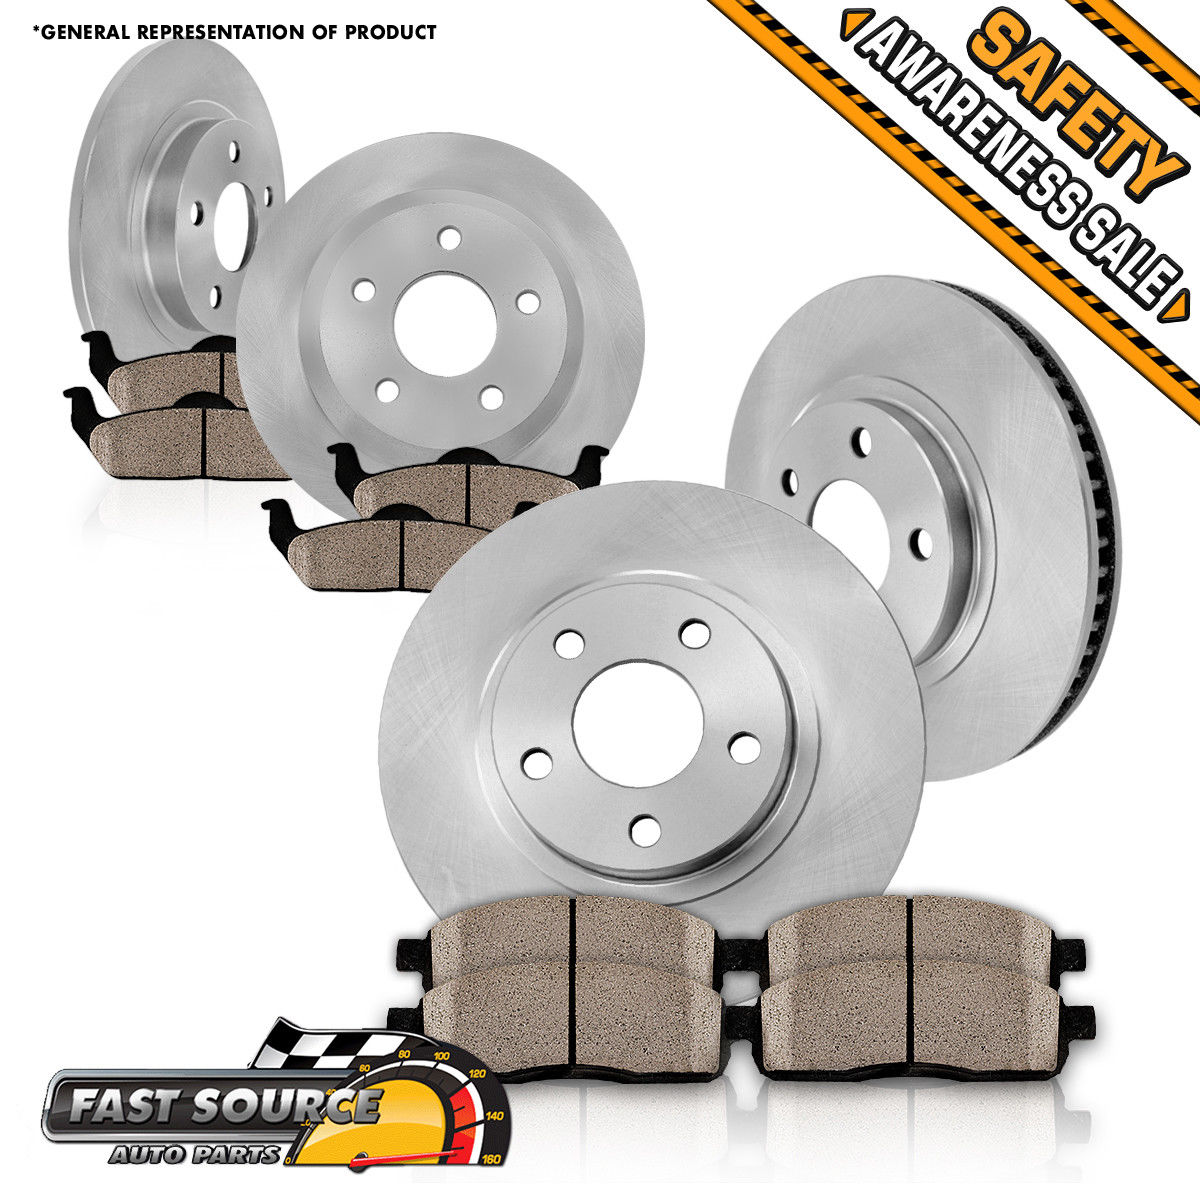 Rear Brake Calipers Rotors Pads For 2003 2004 2005 2006 2007 Accord EX LX DX SE